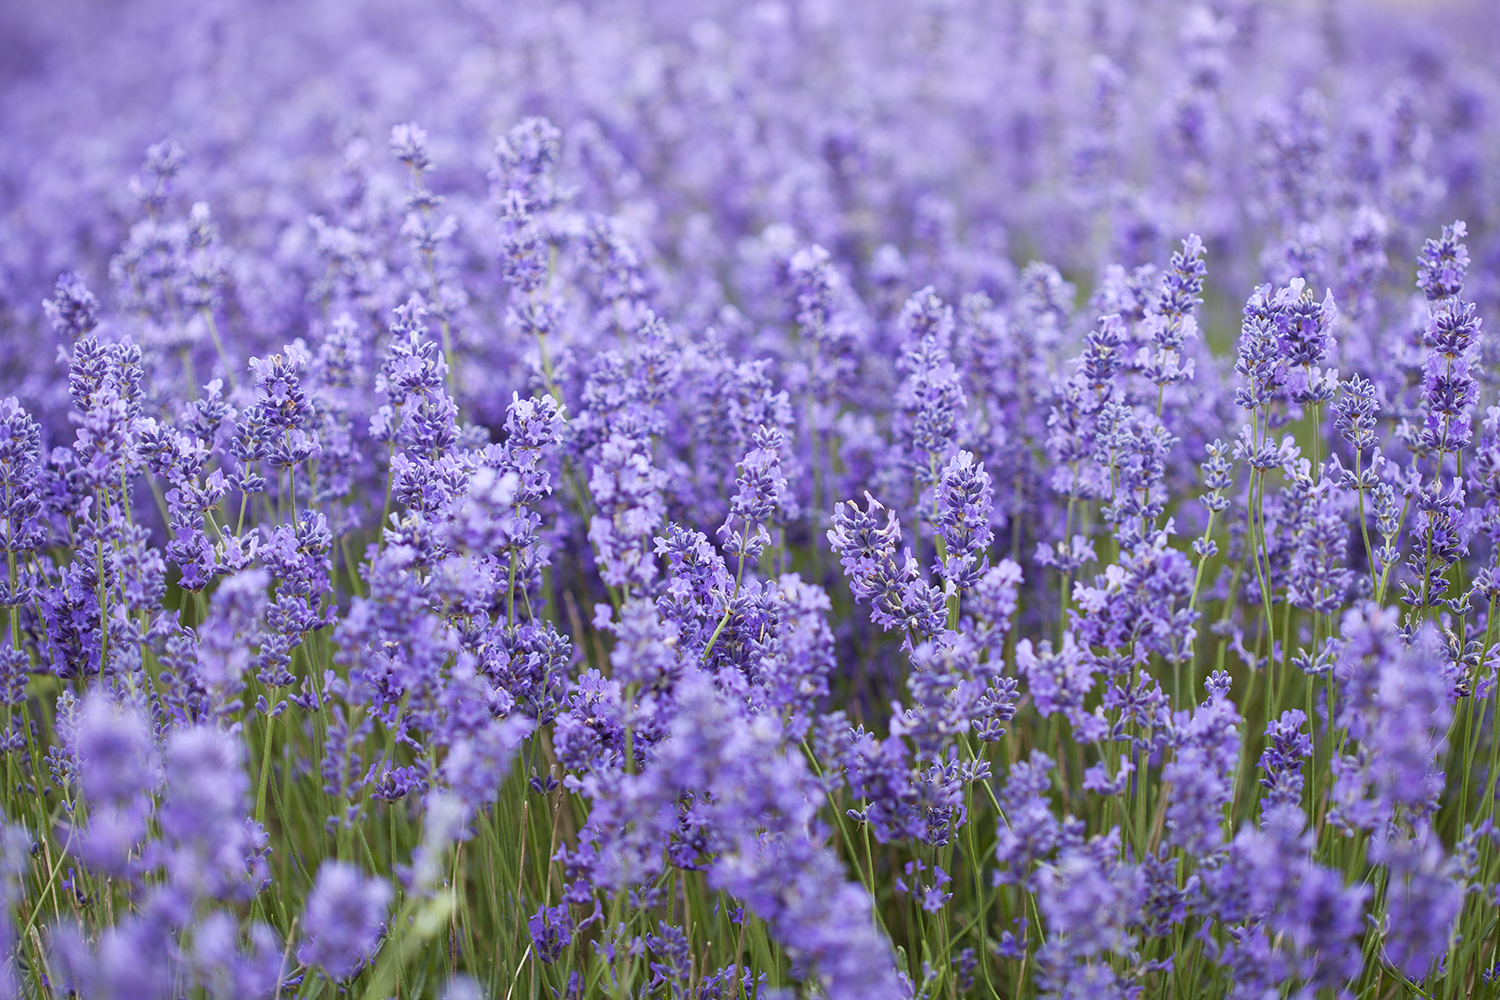 Simple Digital Habits that Support my Life and Work | Natasha Denness Coaching | natashadenness.co.uk (image of lavender fields)